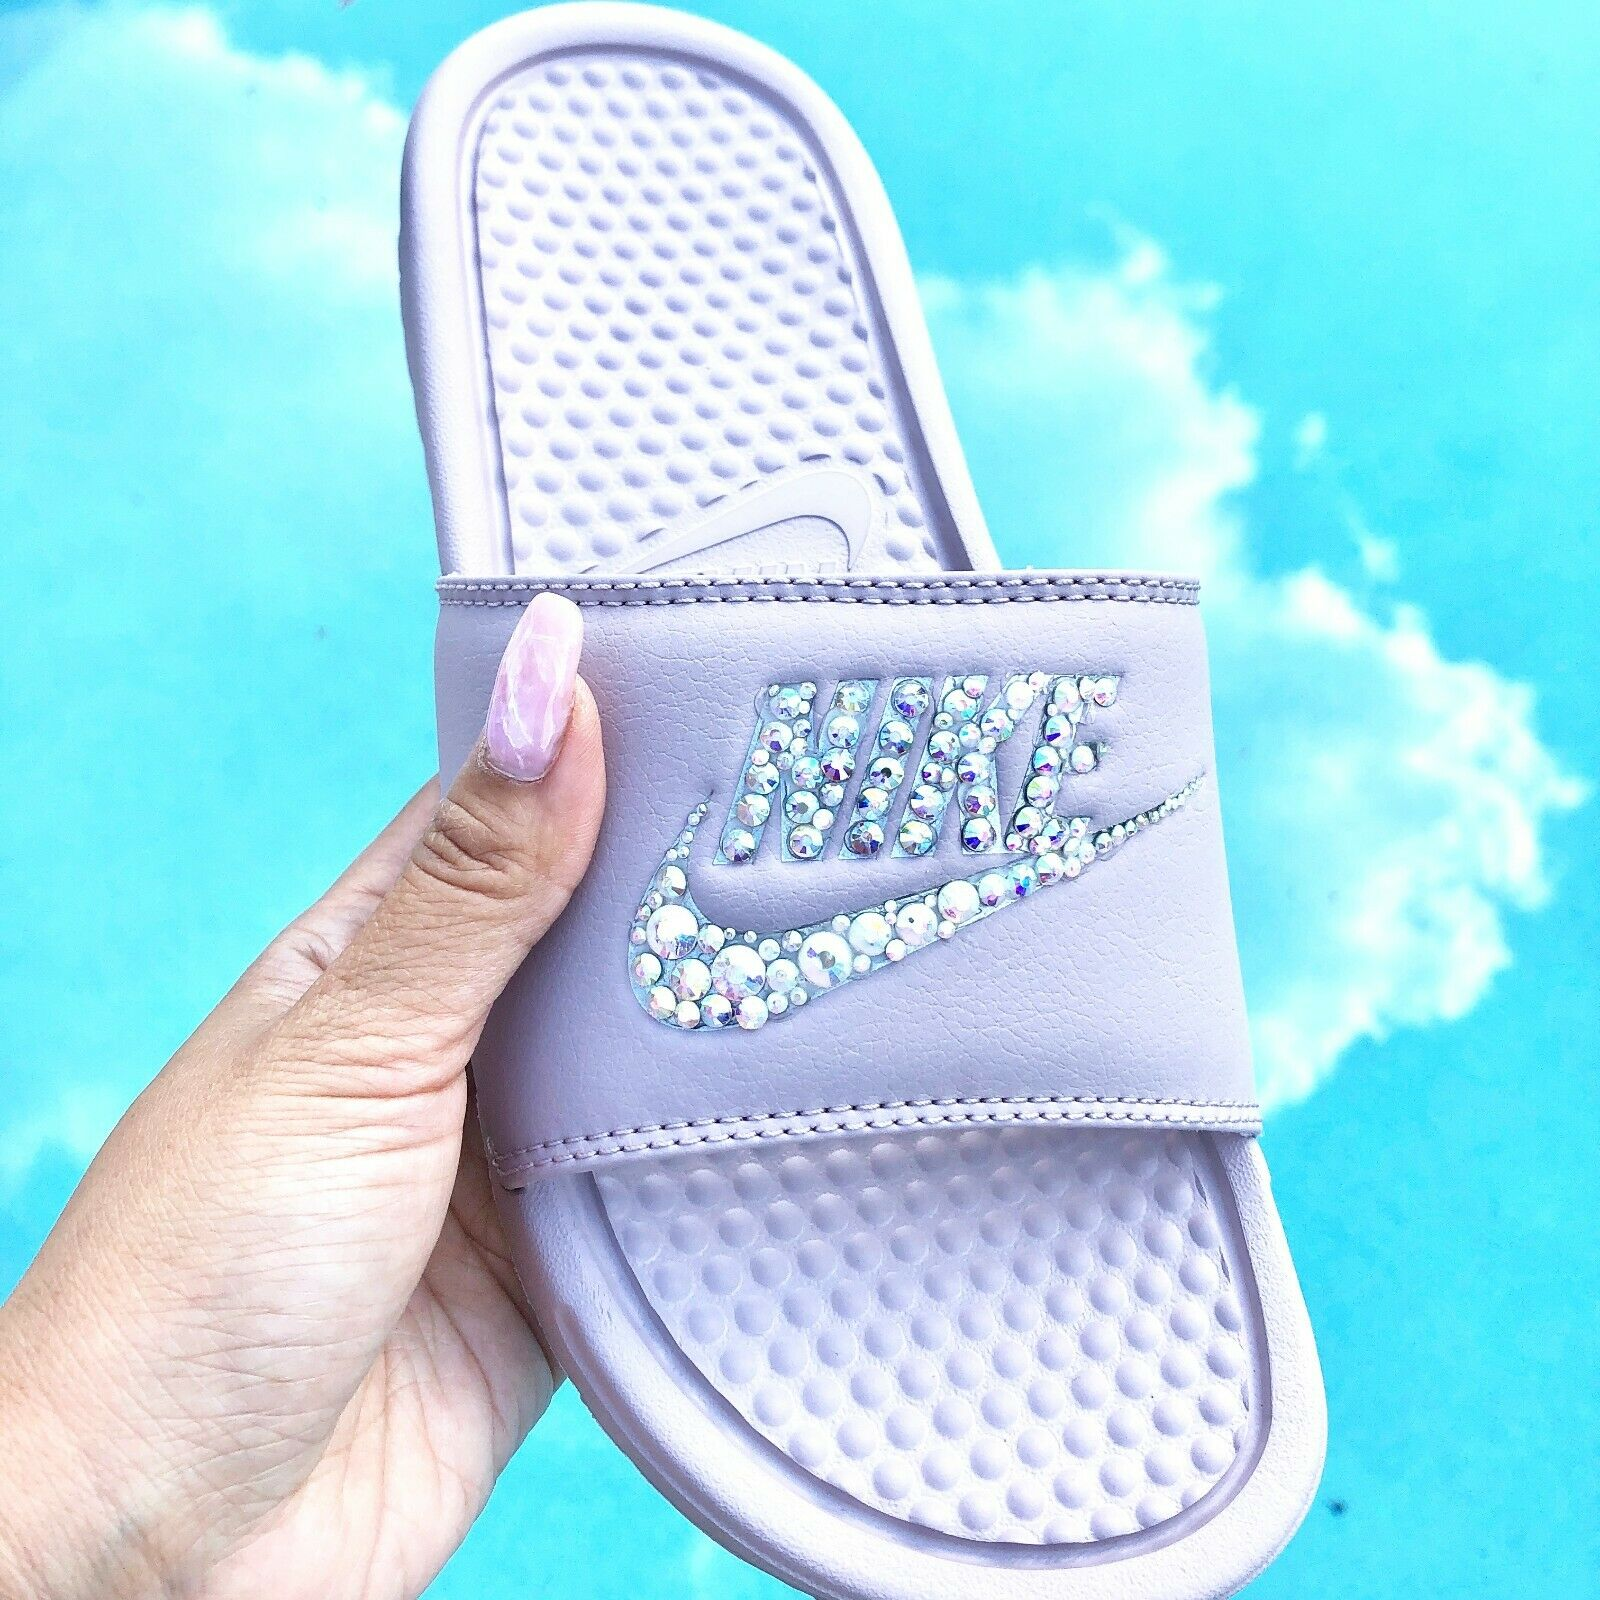 142e90a625ec65 NWT Nike Womens Slides Sandals Swarovski Crystal Bling Bedazzled bluesh Size  8